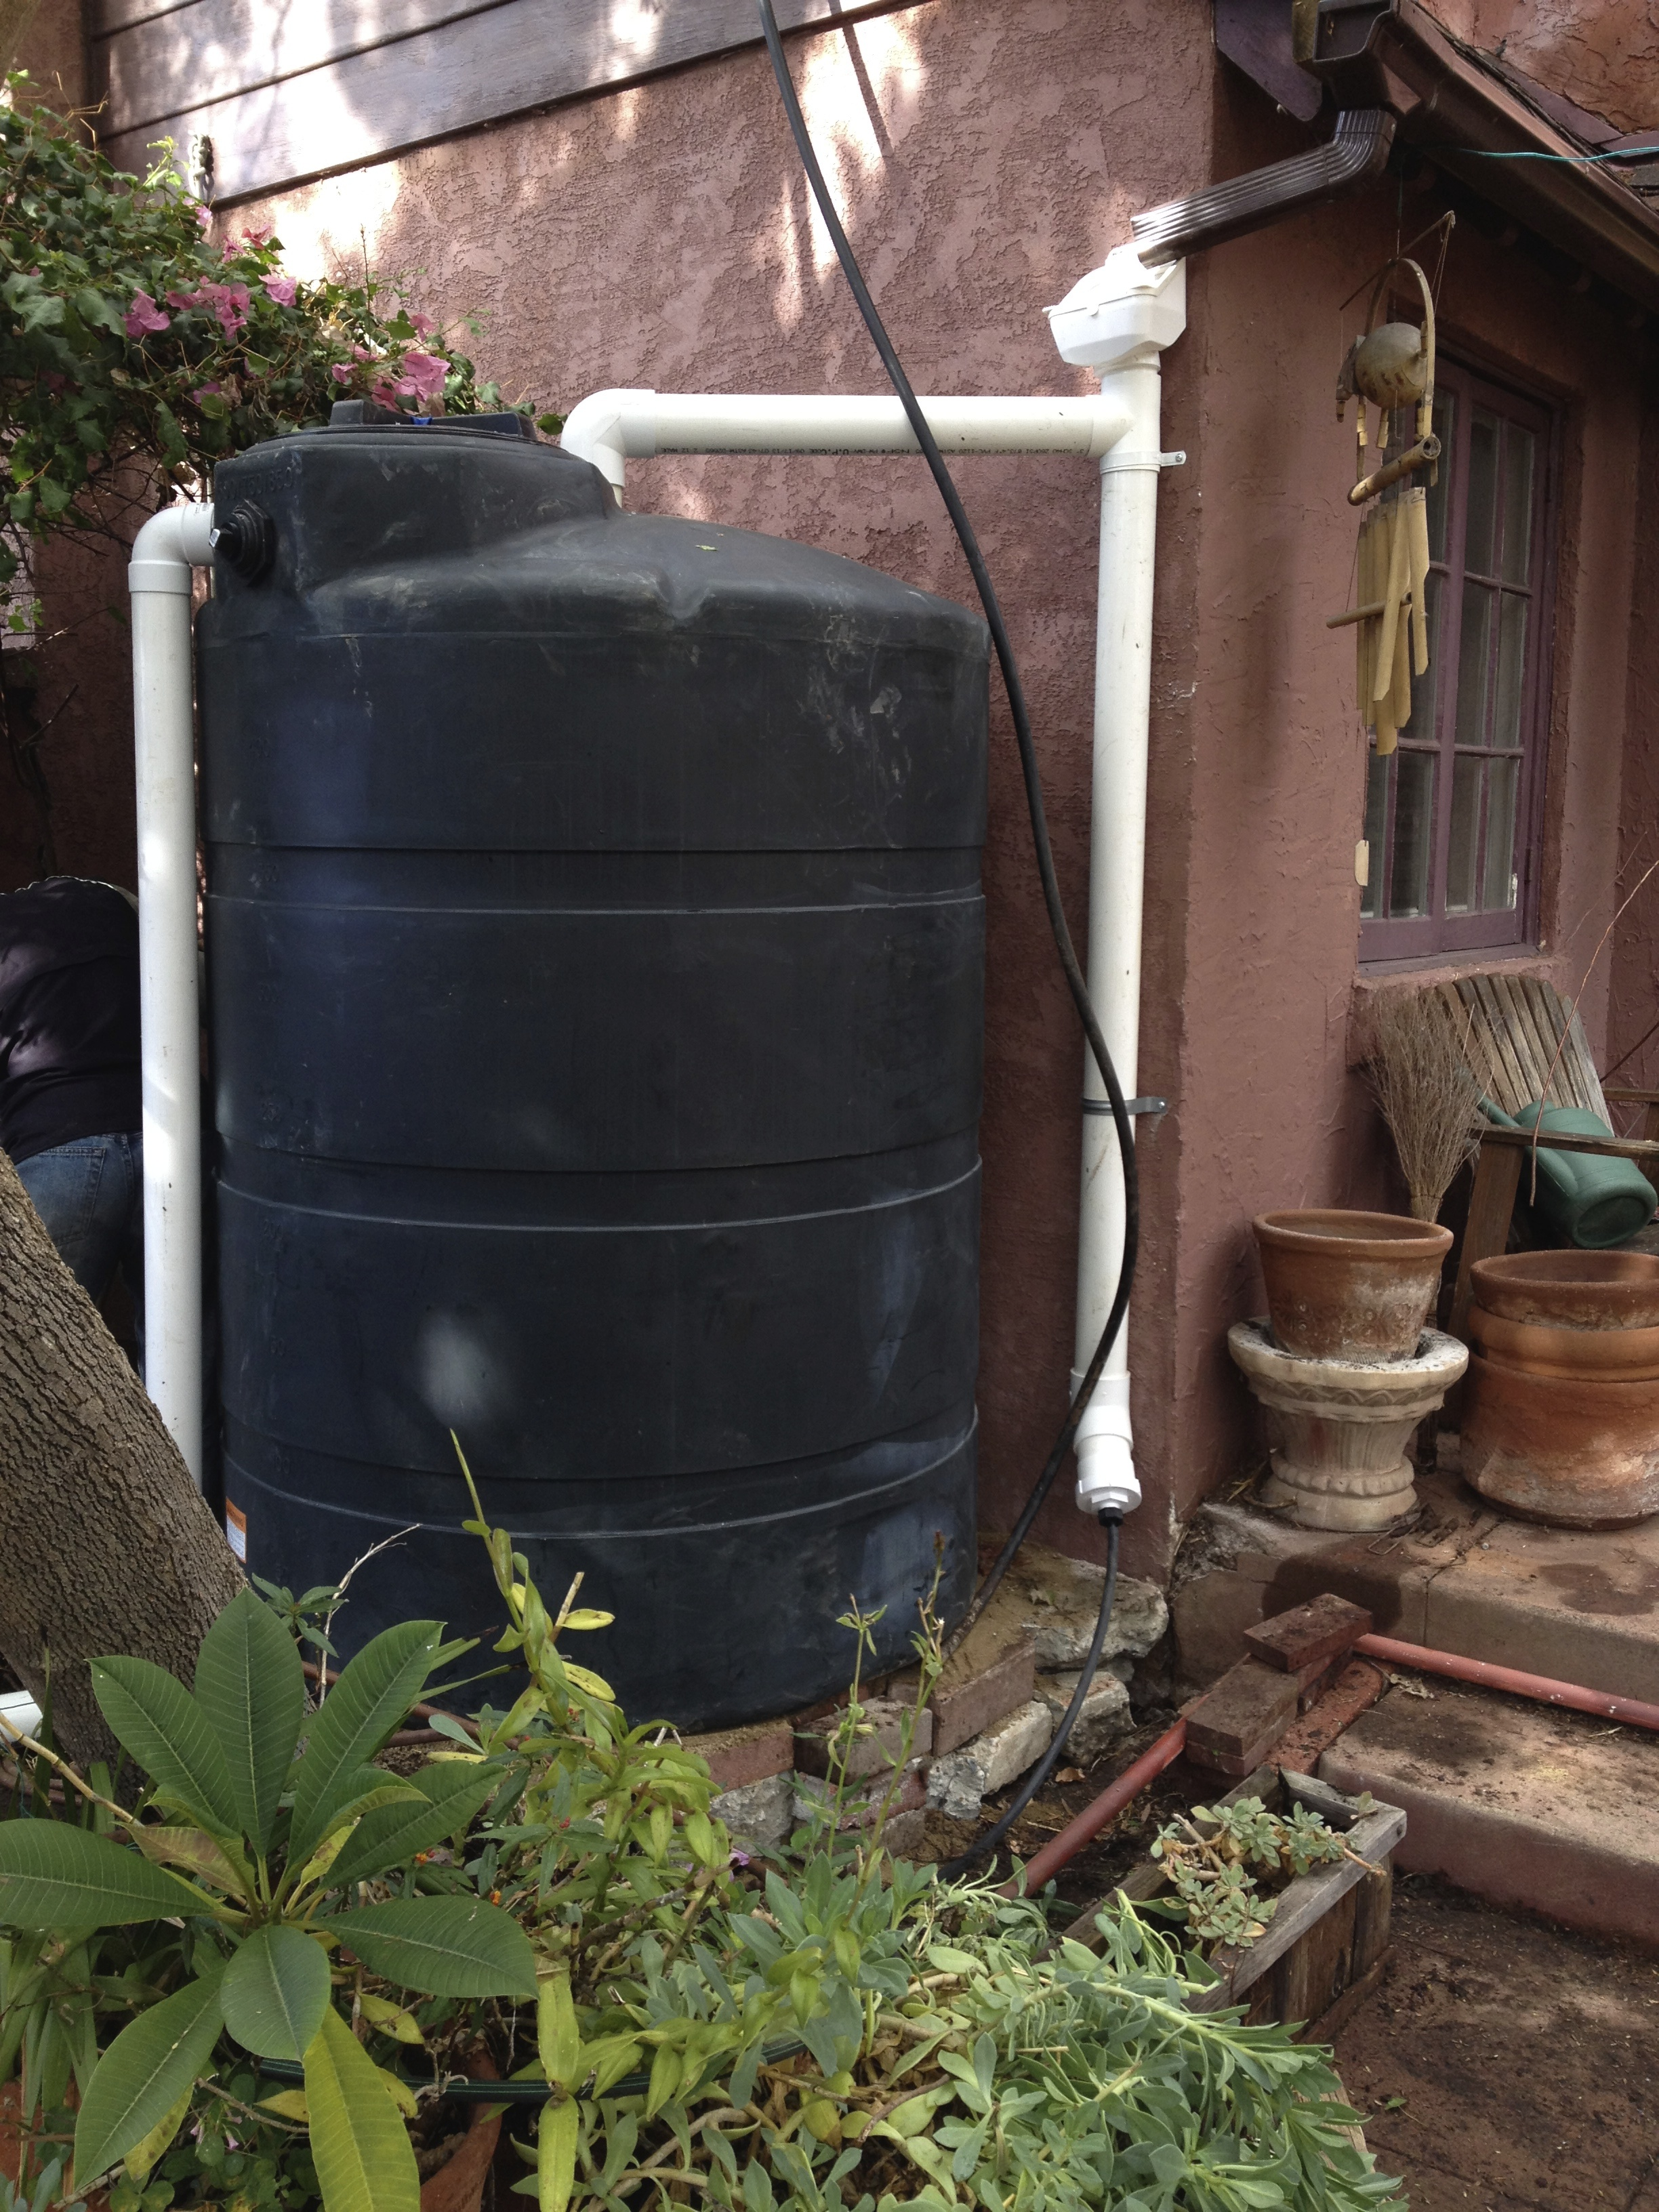 The sloped screen box under the rainwater downspout is called a Leaf Filter. It diverts leaves and other large debris from your tank. The standpipe directly under the leaf filter is a homemade First Flush Diverter. The first amount of rain that washes any small debris including bird poop, dust, pollen, etc will collect in this standpipe. As the water continues to wash off the roof, the water has less pollutants in it and overflows to fill the tank. The first flush diverter can then be easily drained, and opened up to be cleaned.